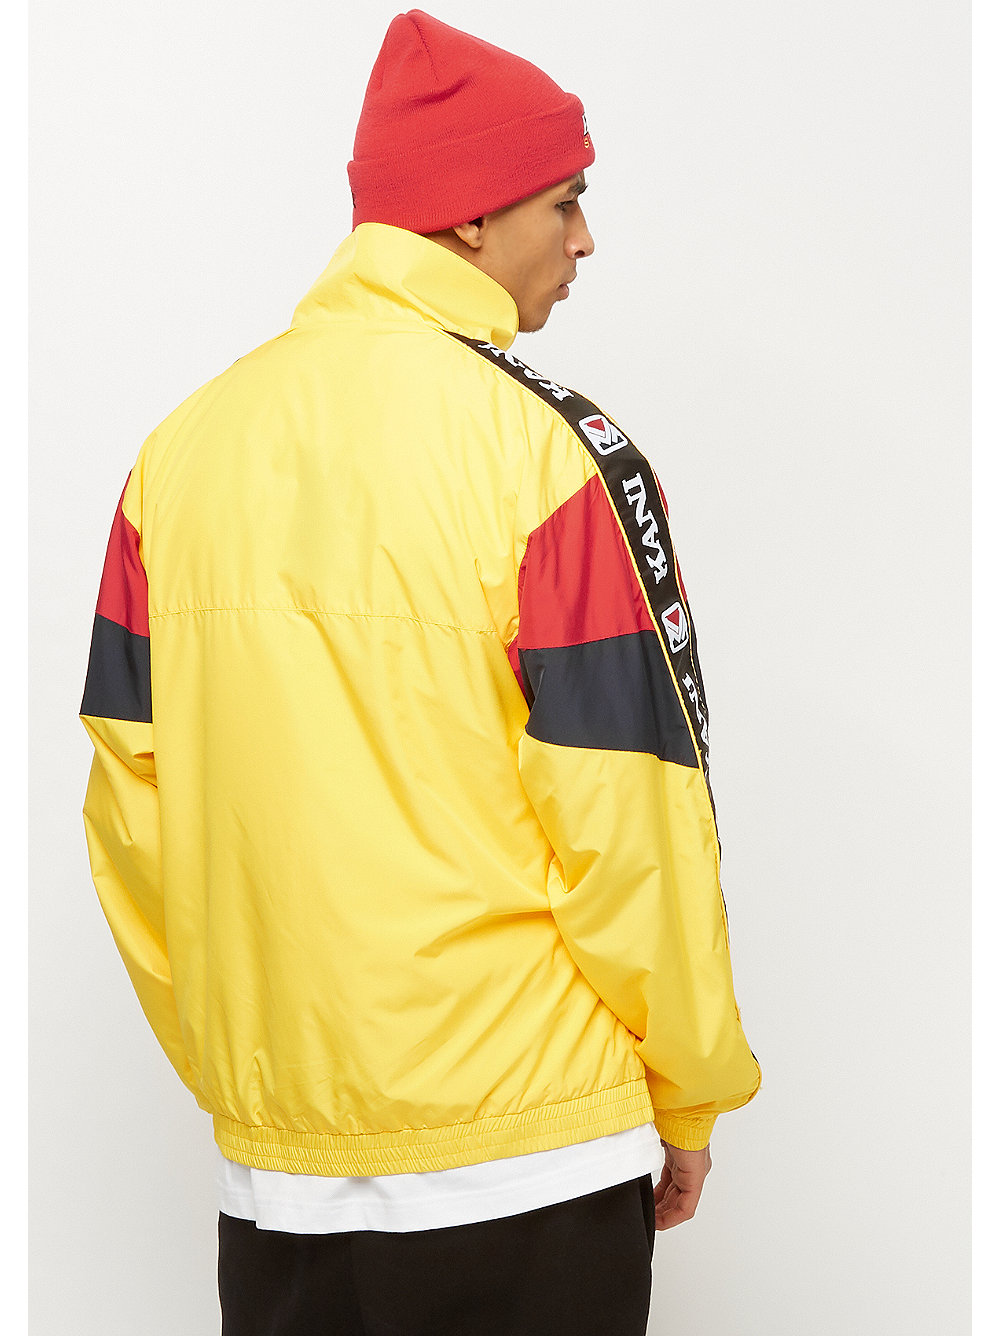 28d9cb33cfa16 Compra Karl Kani KK Retro Block Trackjacket yellow red navy Chaquetas de  entrenamiento en SNIPES